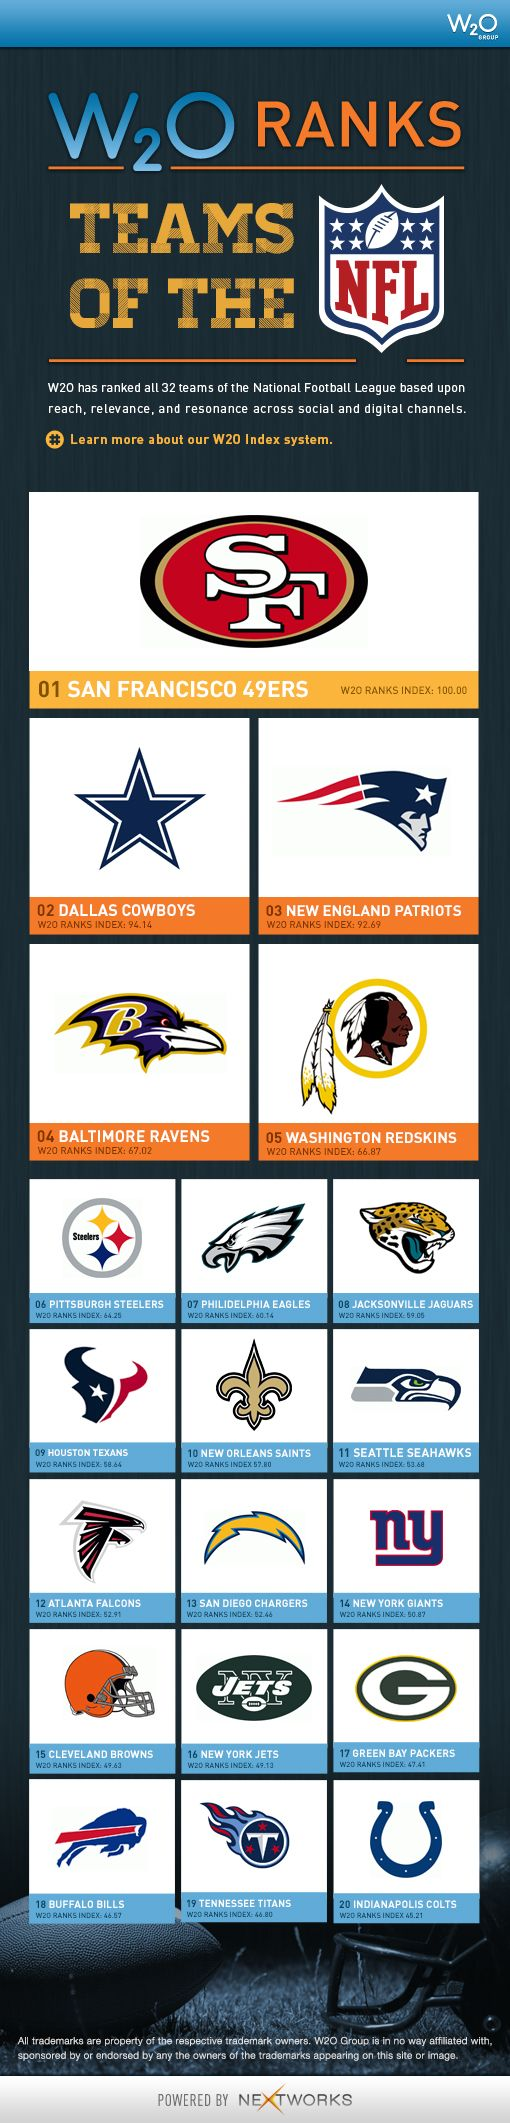 TOUCH this image: W2O Ranks Teams of the NFL by NextWorks